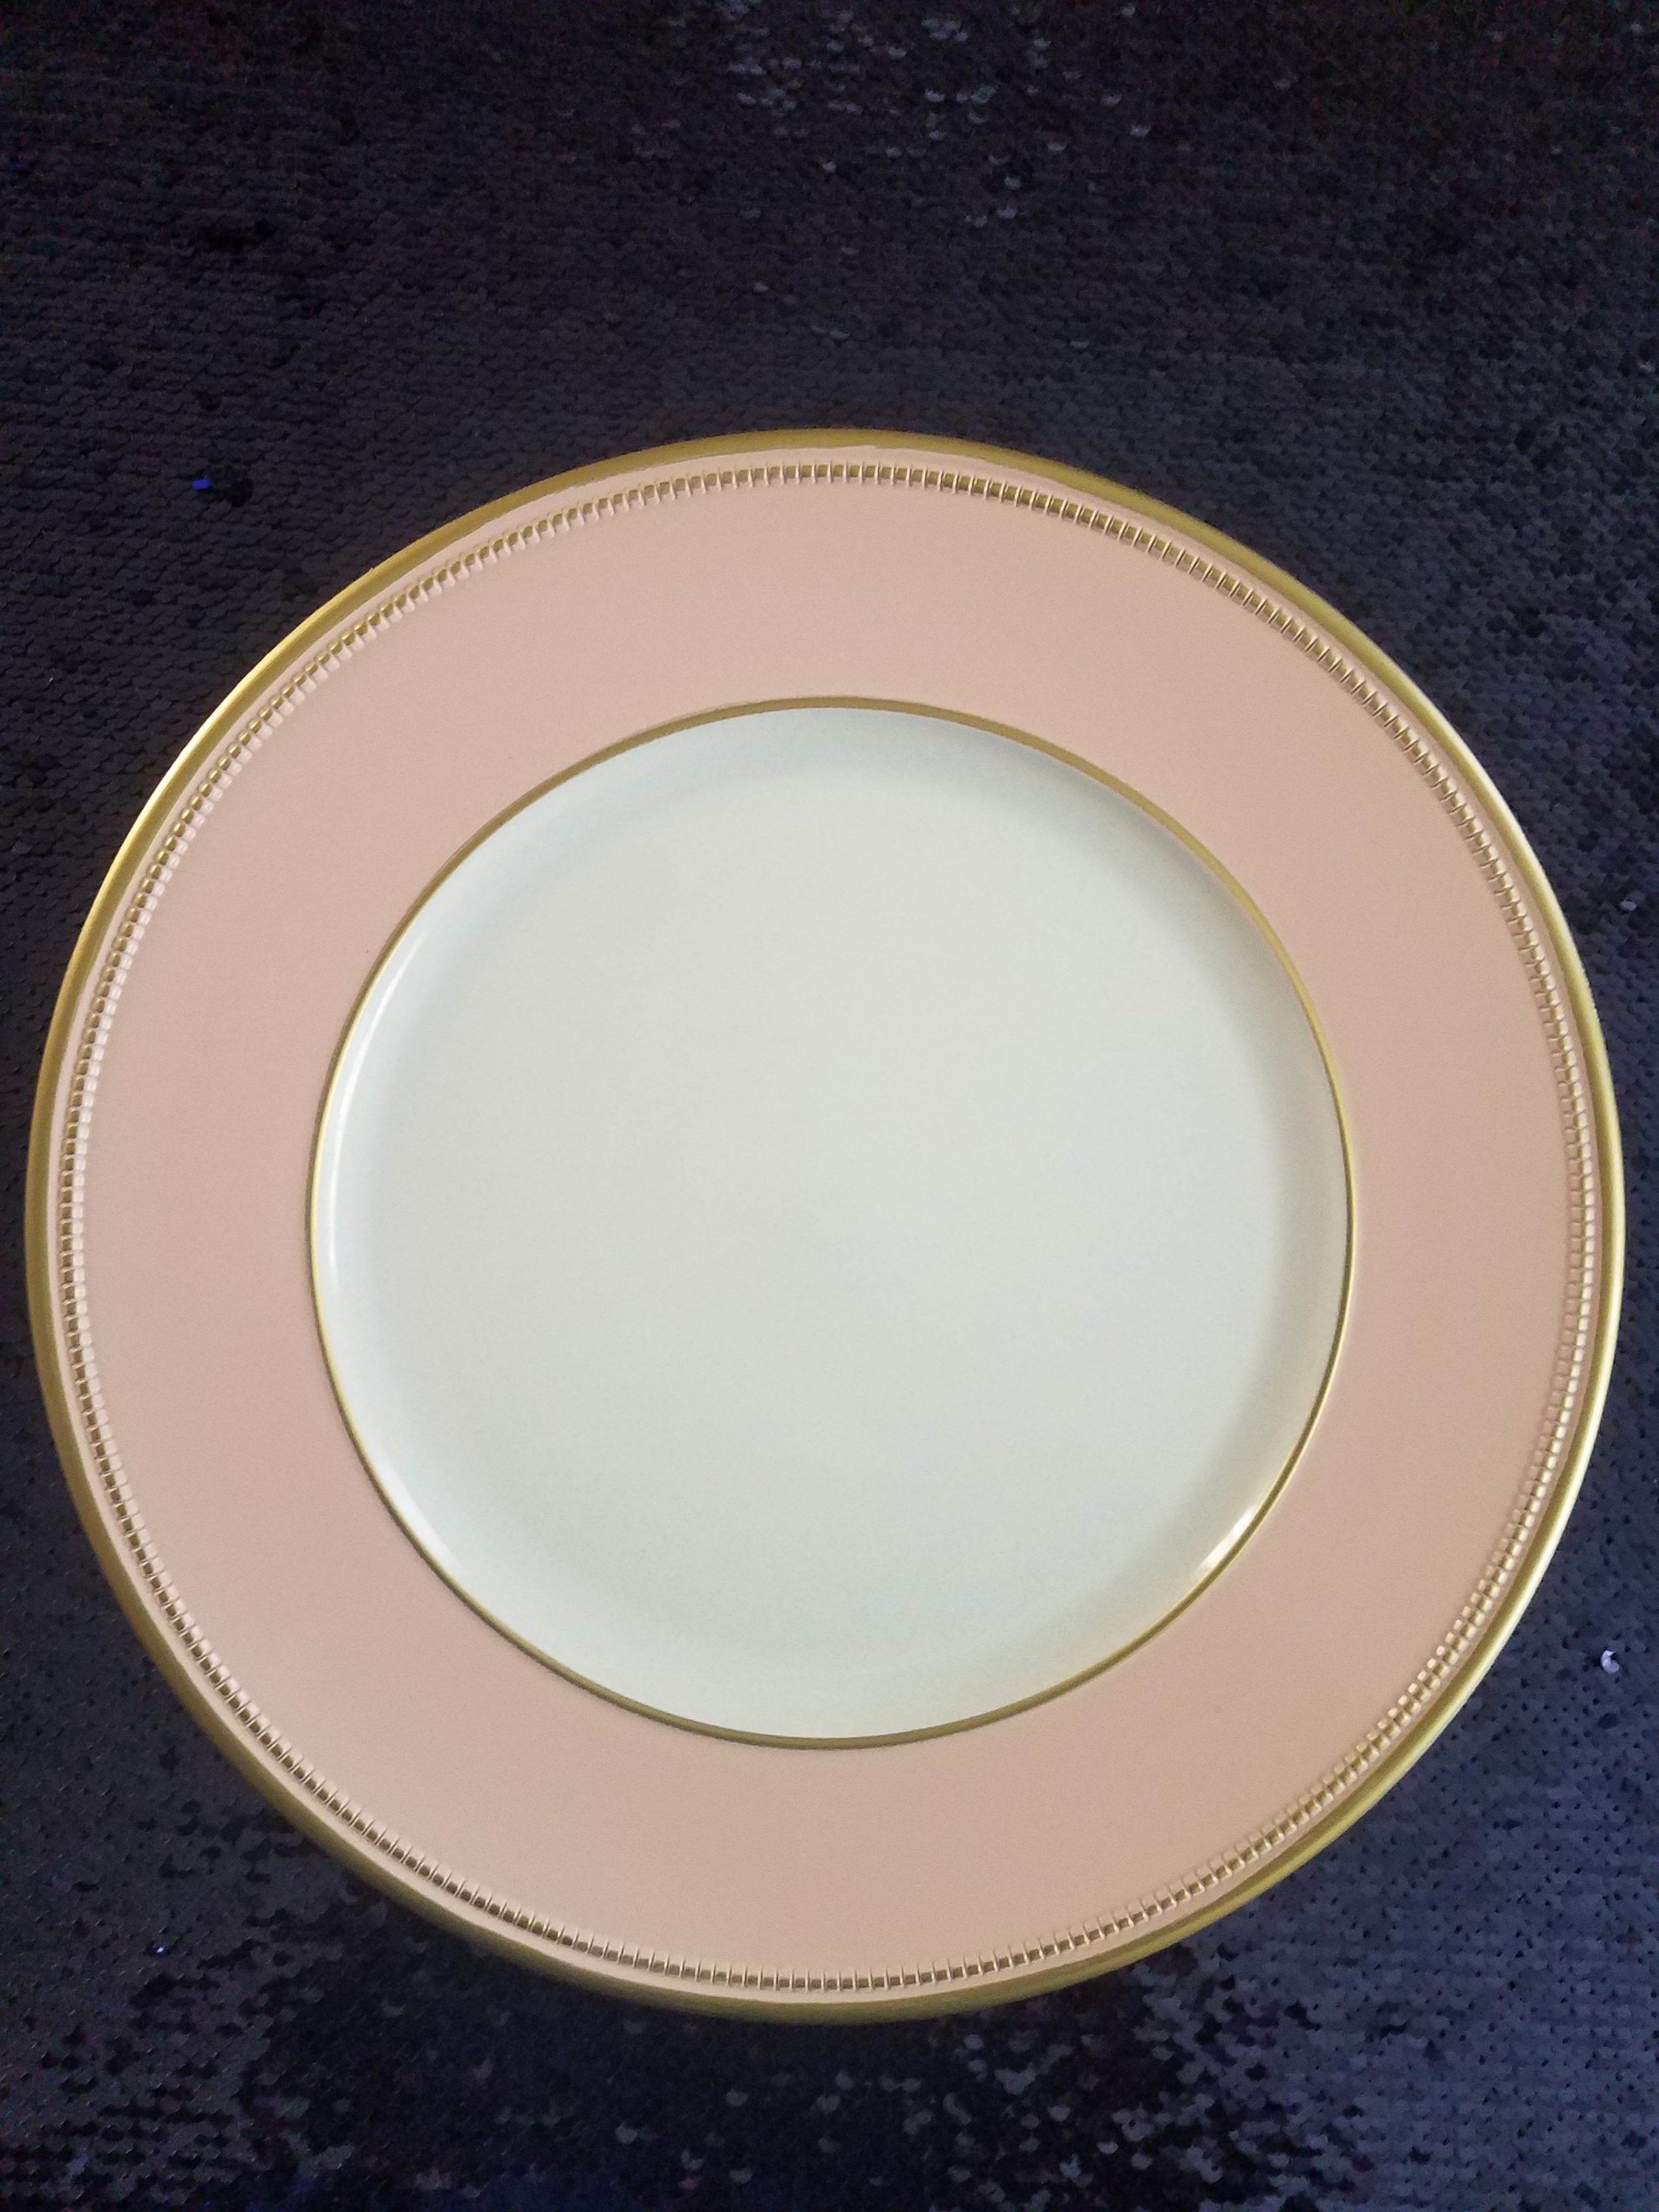 Blush and Gold Arylic Charger -$2.00